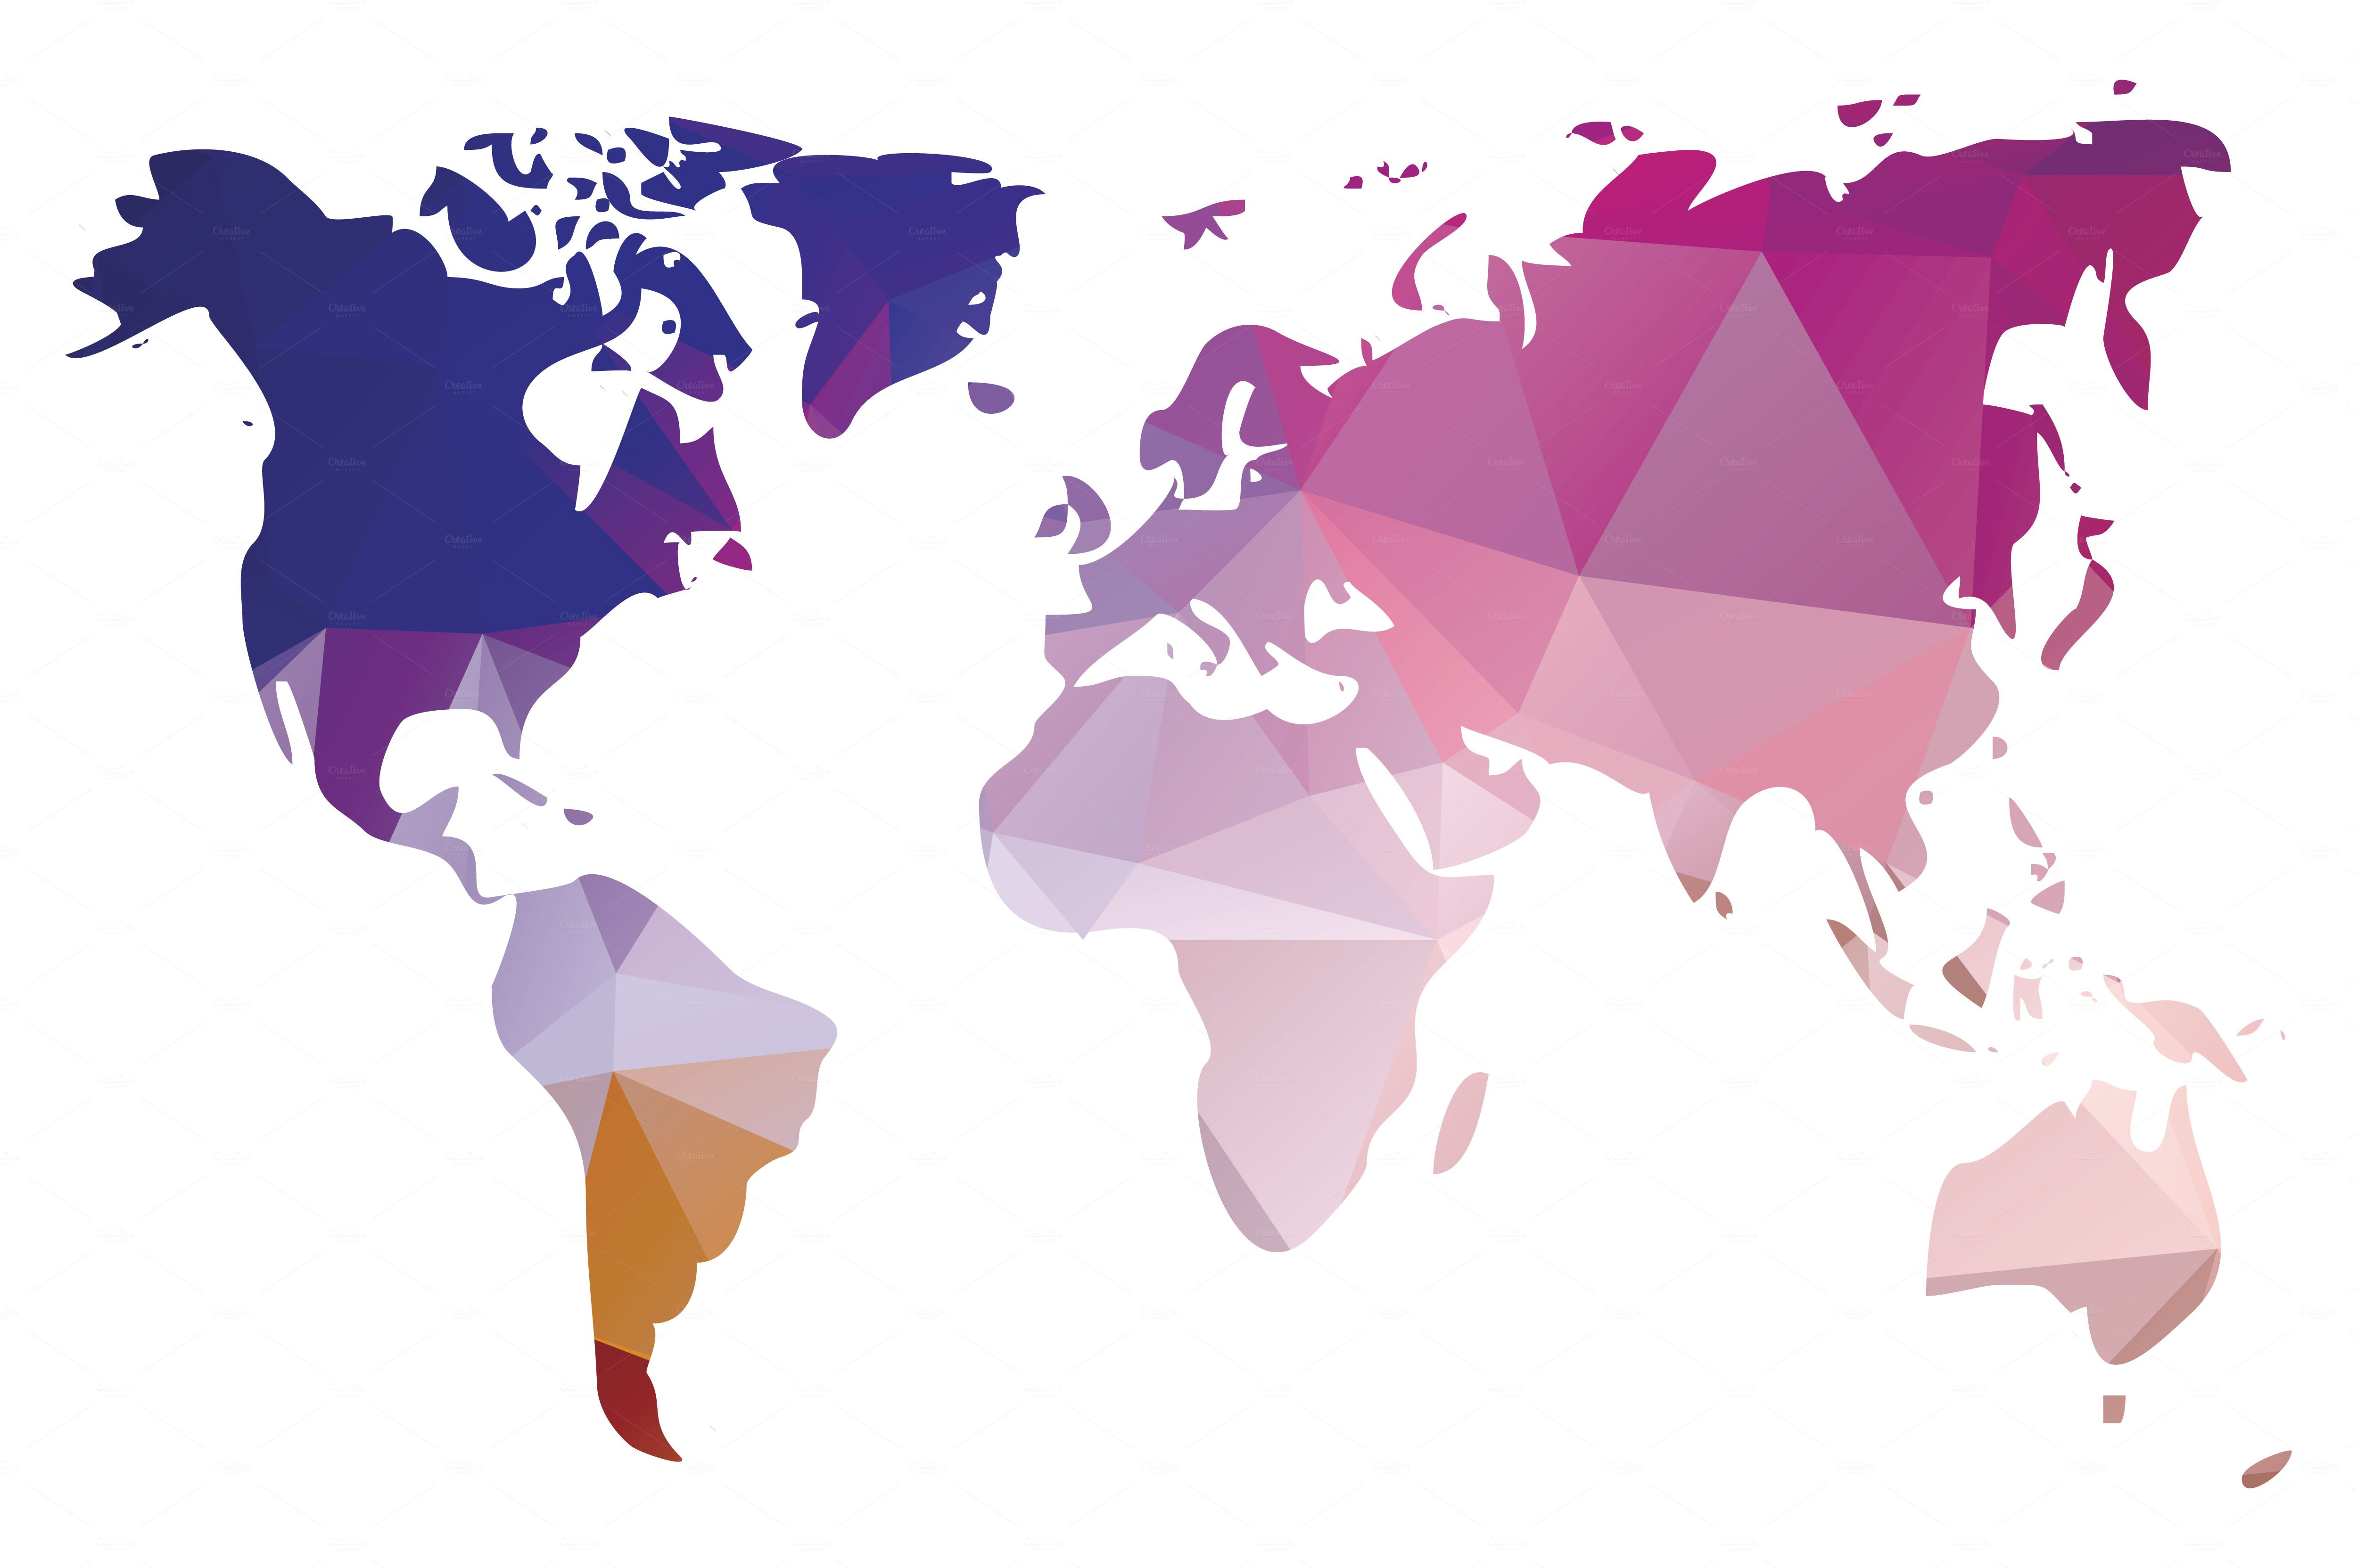 10 World Maps in Different Design by